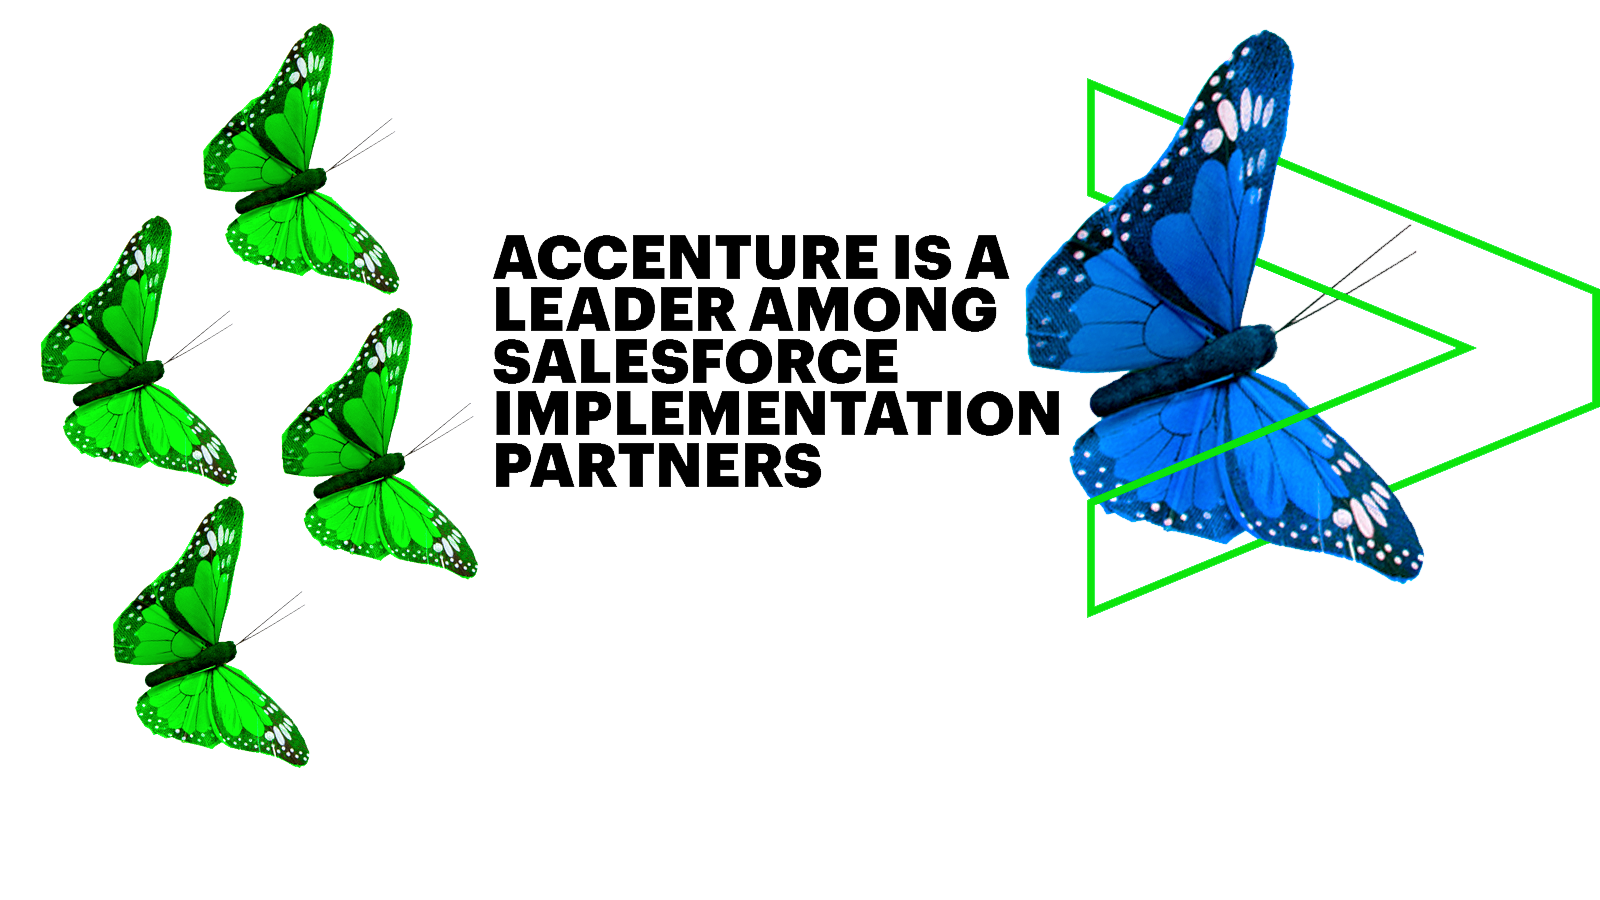 Accenture is a leader among salesforce implementation partners